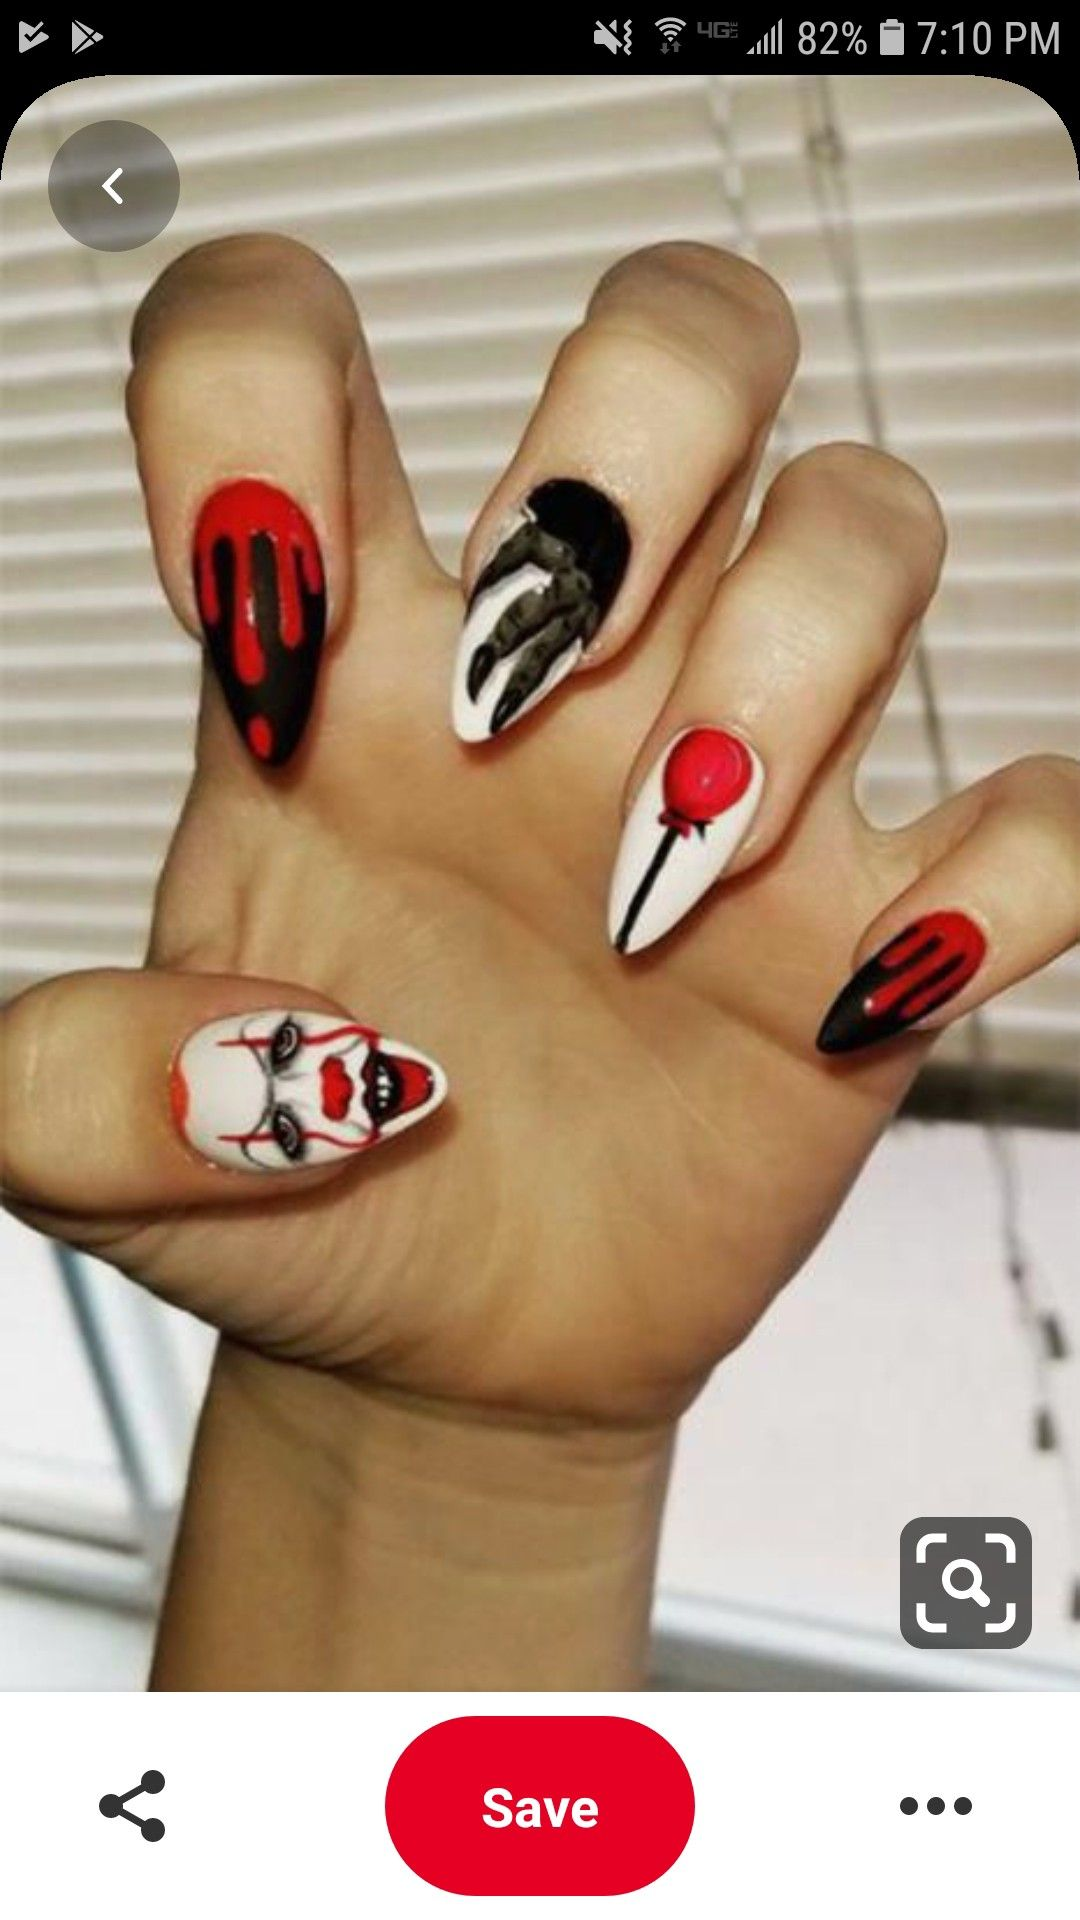 Pin by Trầm Lê on haloween | Halloween nail designs ...